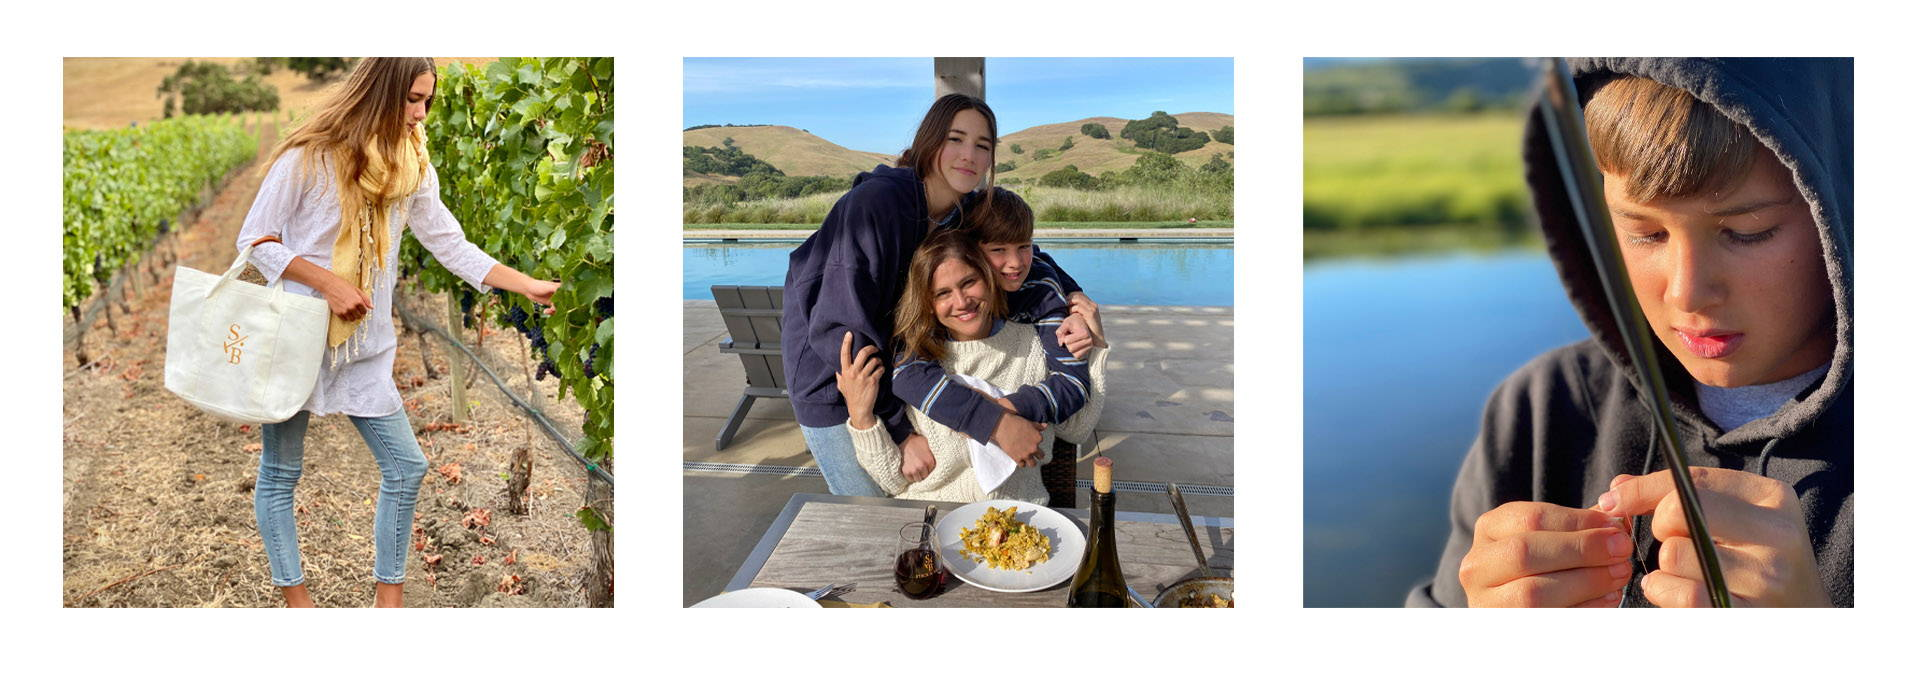 Stick & Ball's founder Elizabeth with her kids in vineyard, eating dinner and fishing